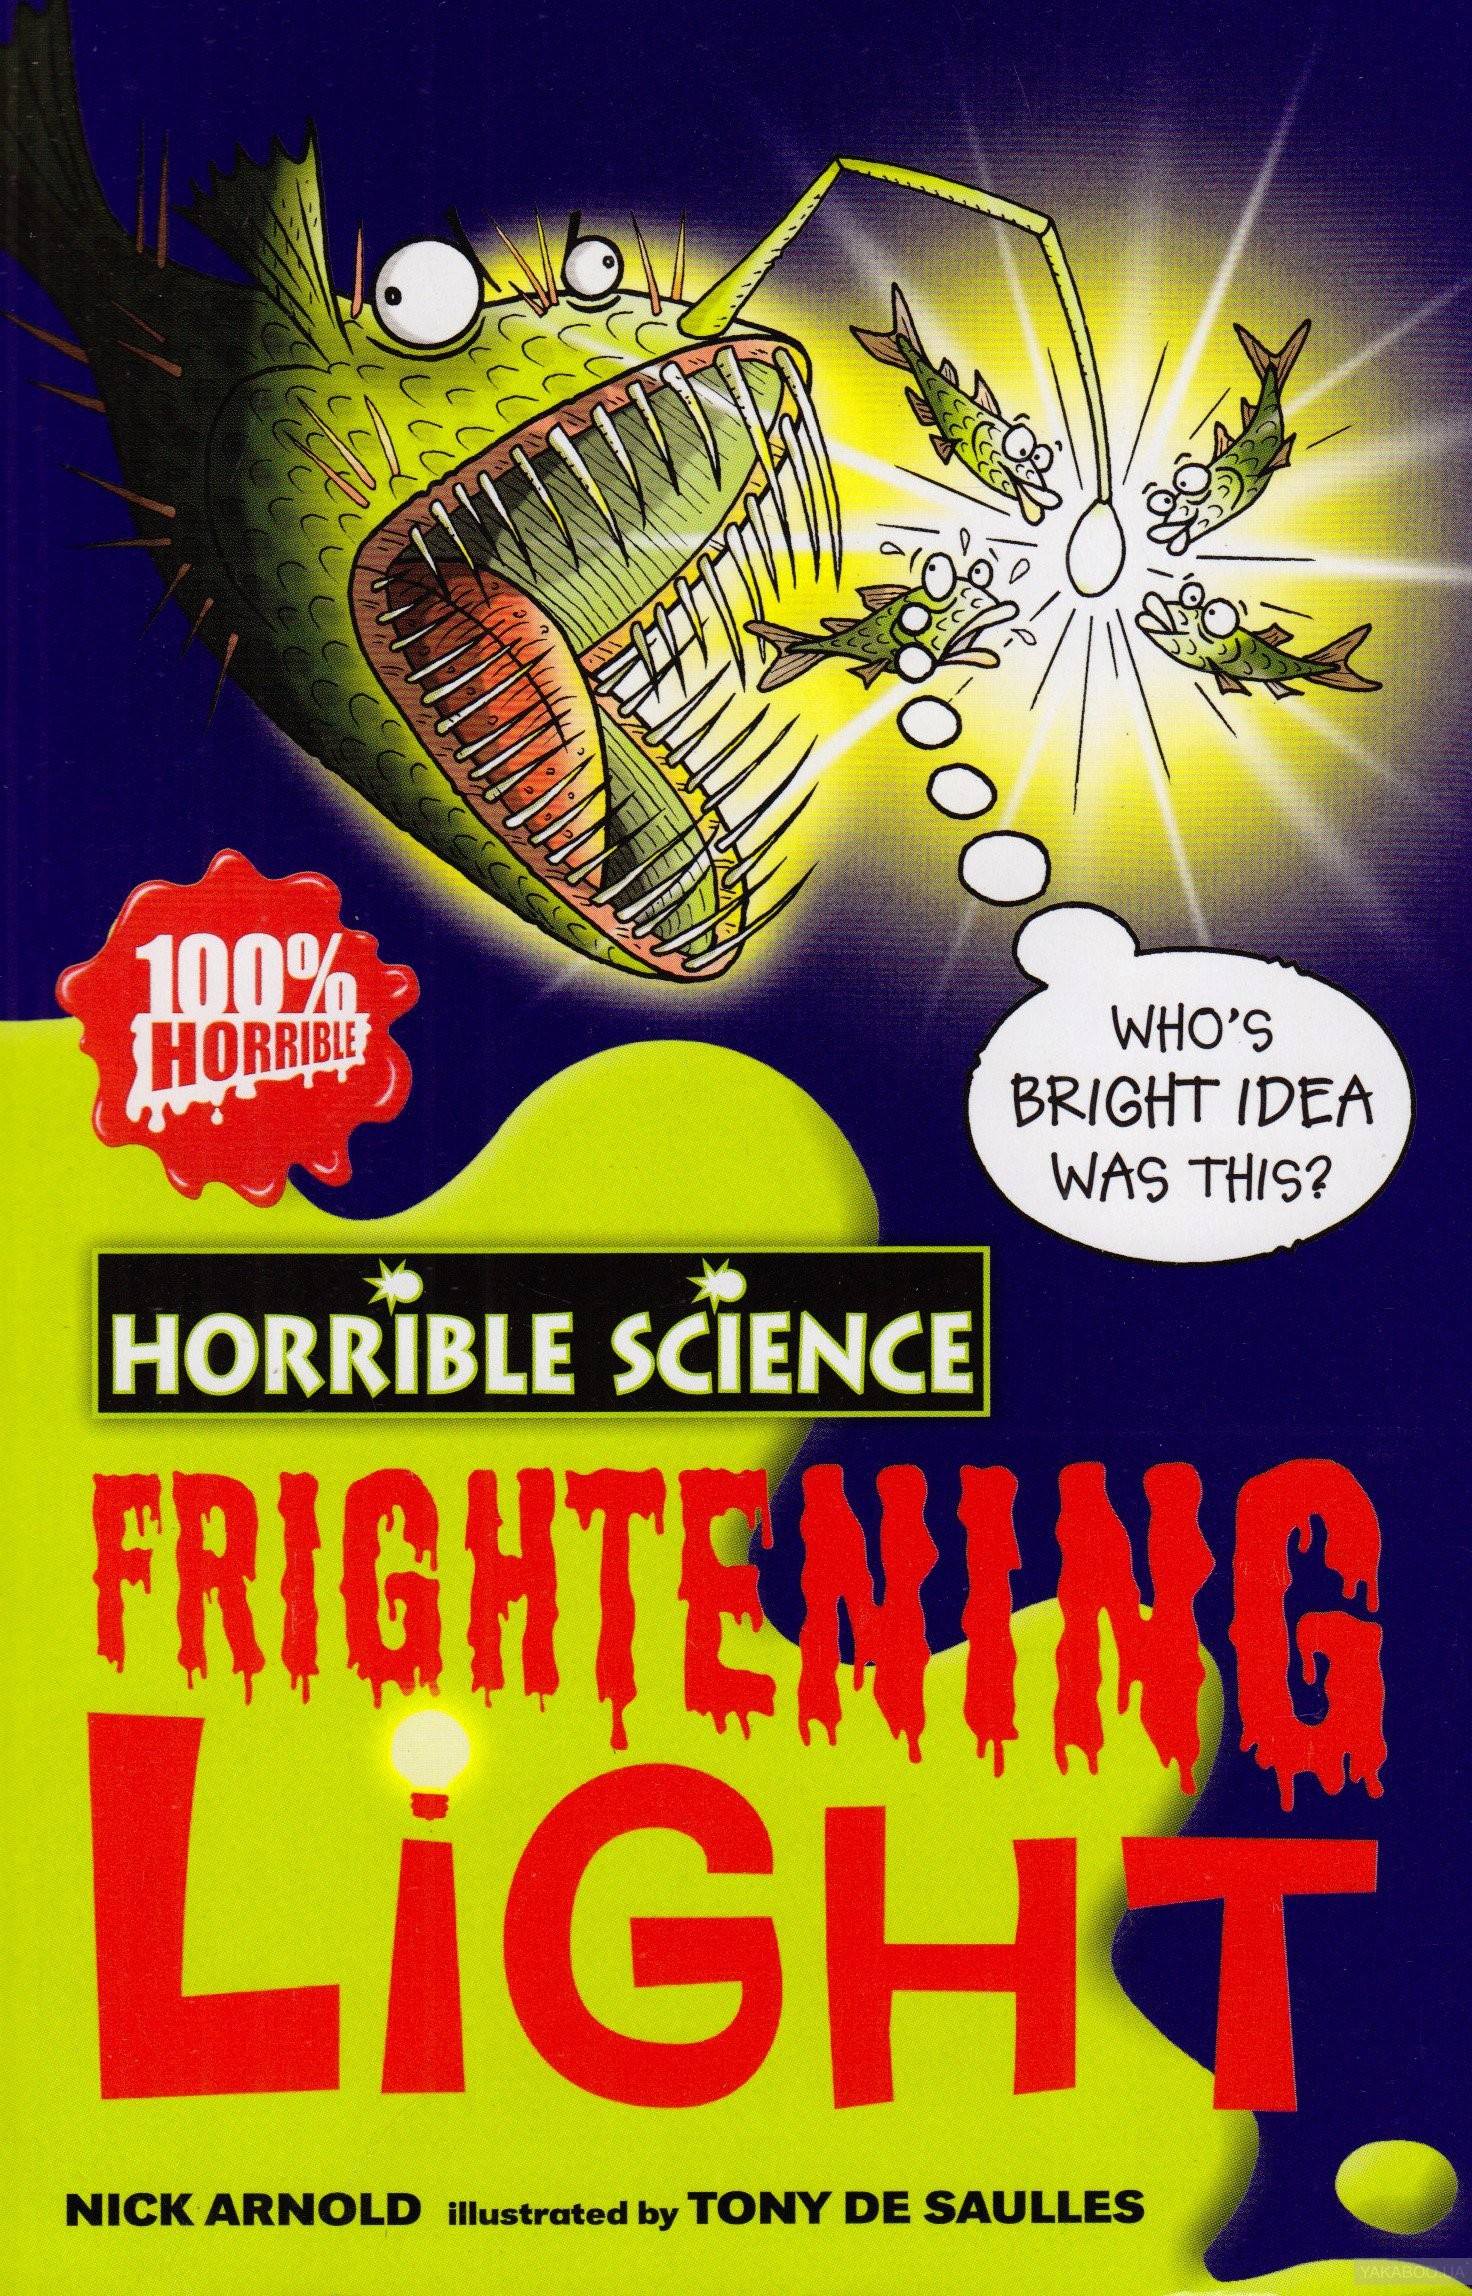 Frightening Light